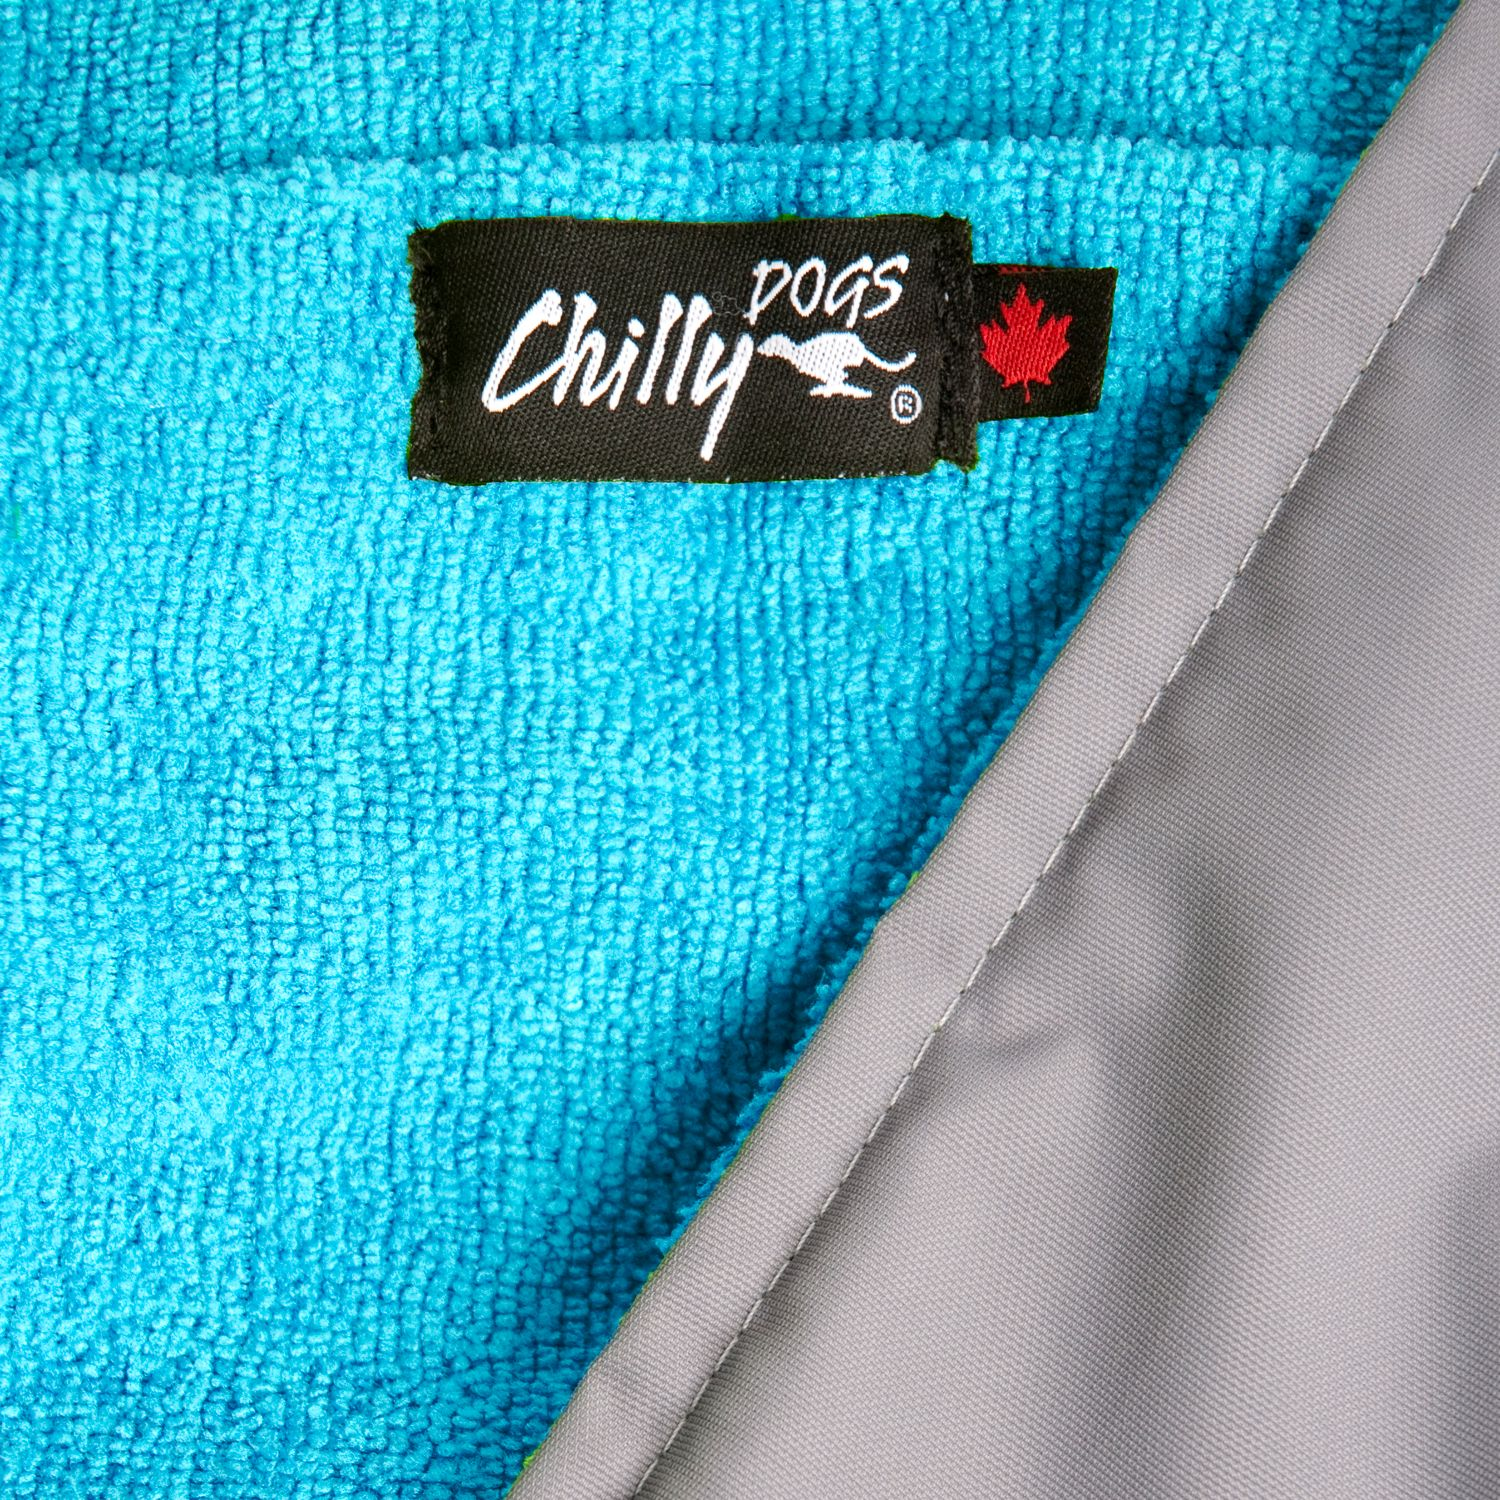 Chilly Dogs Reversible Soaker Mat